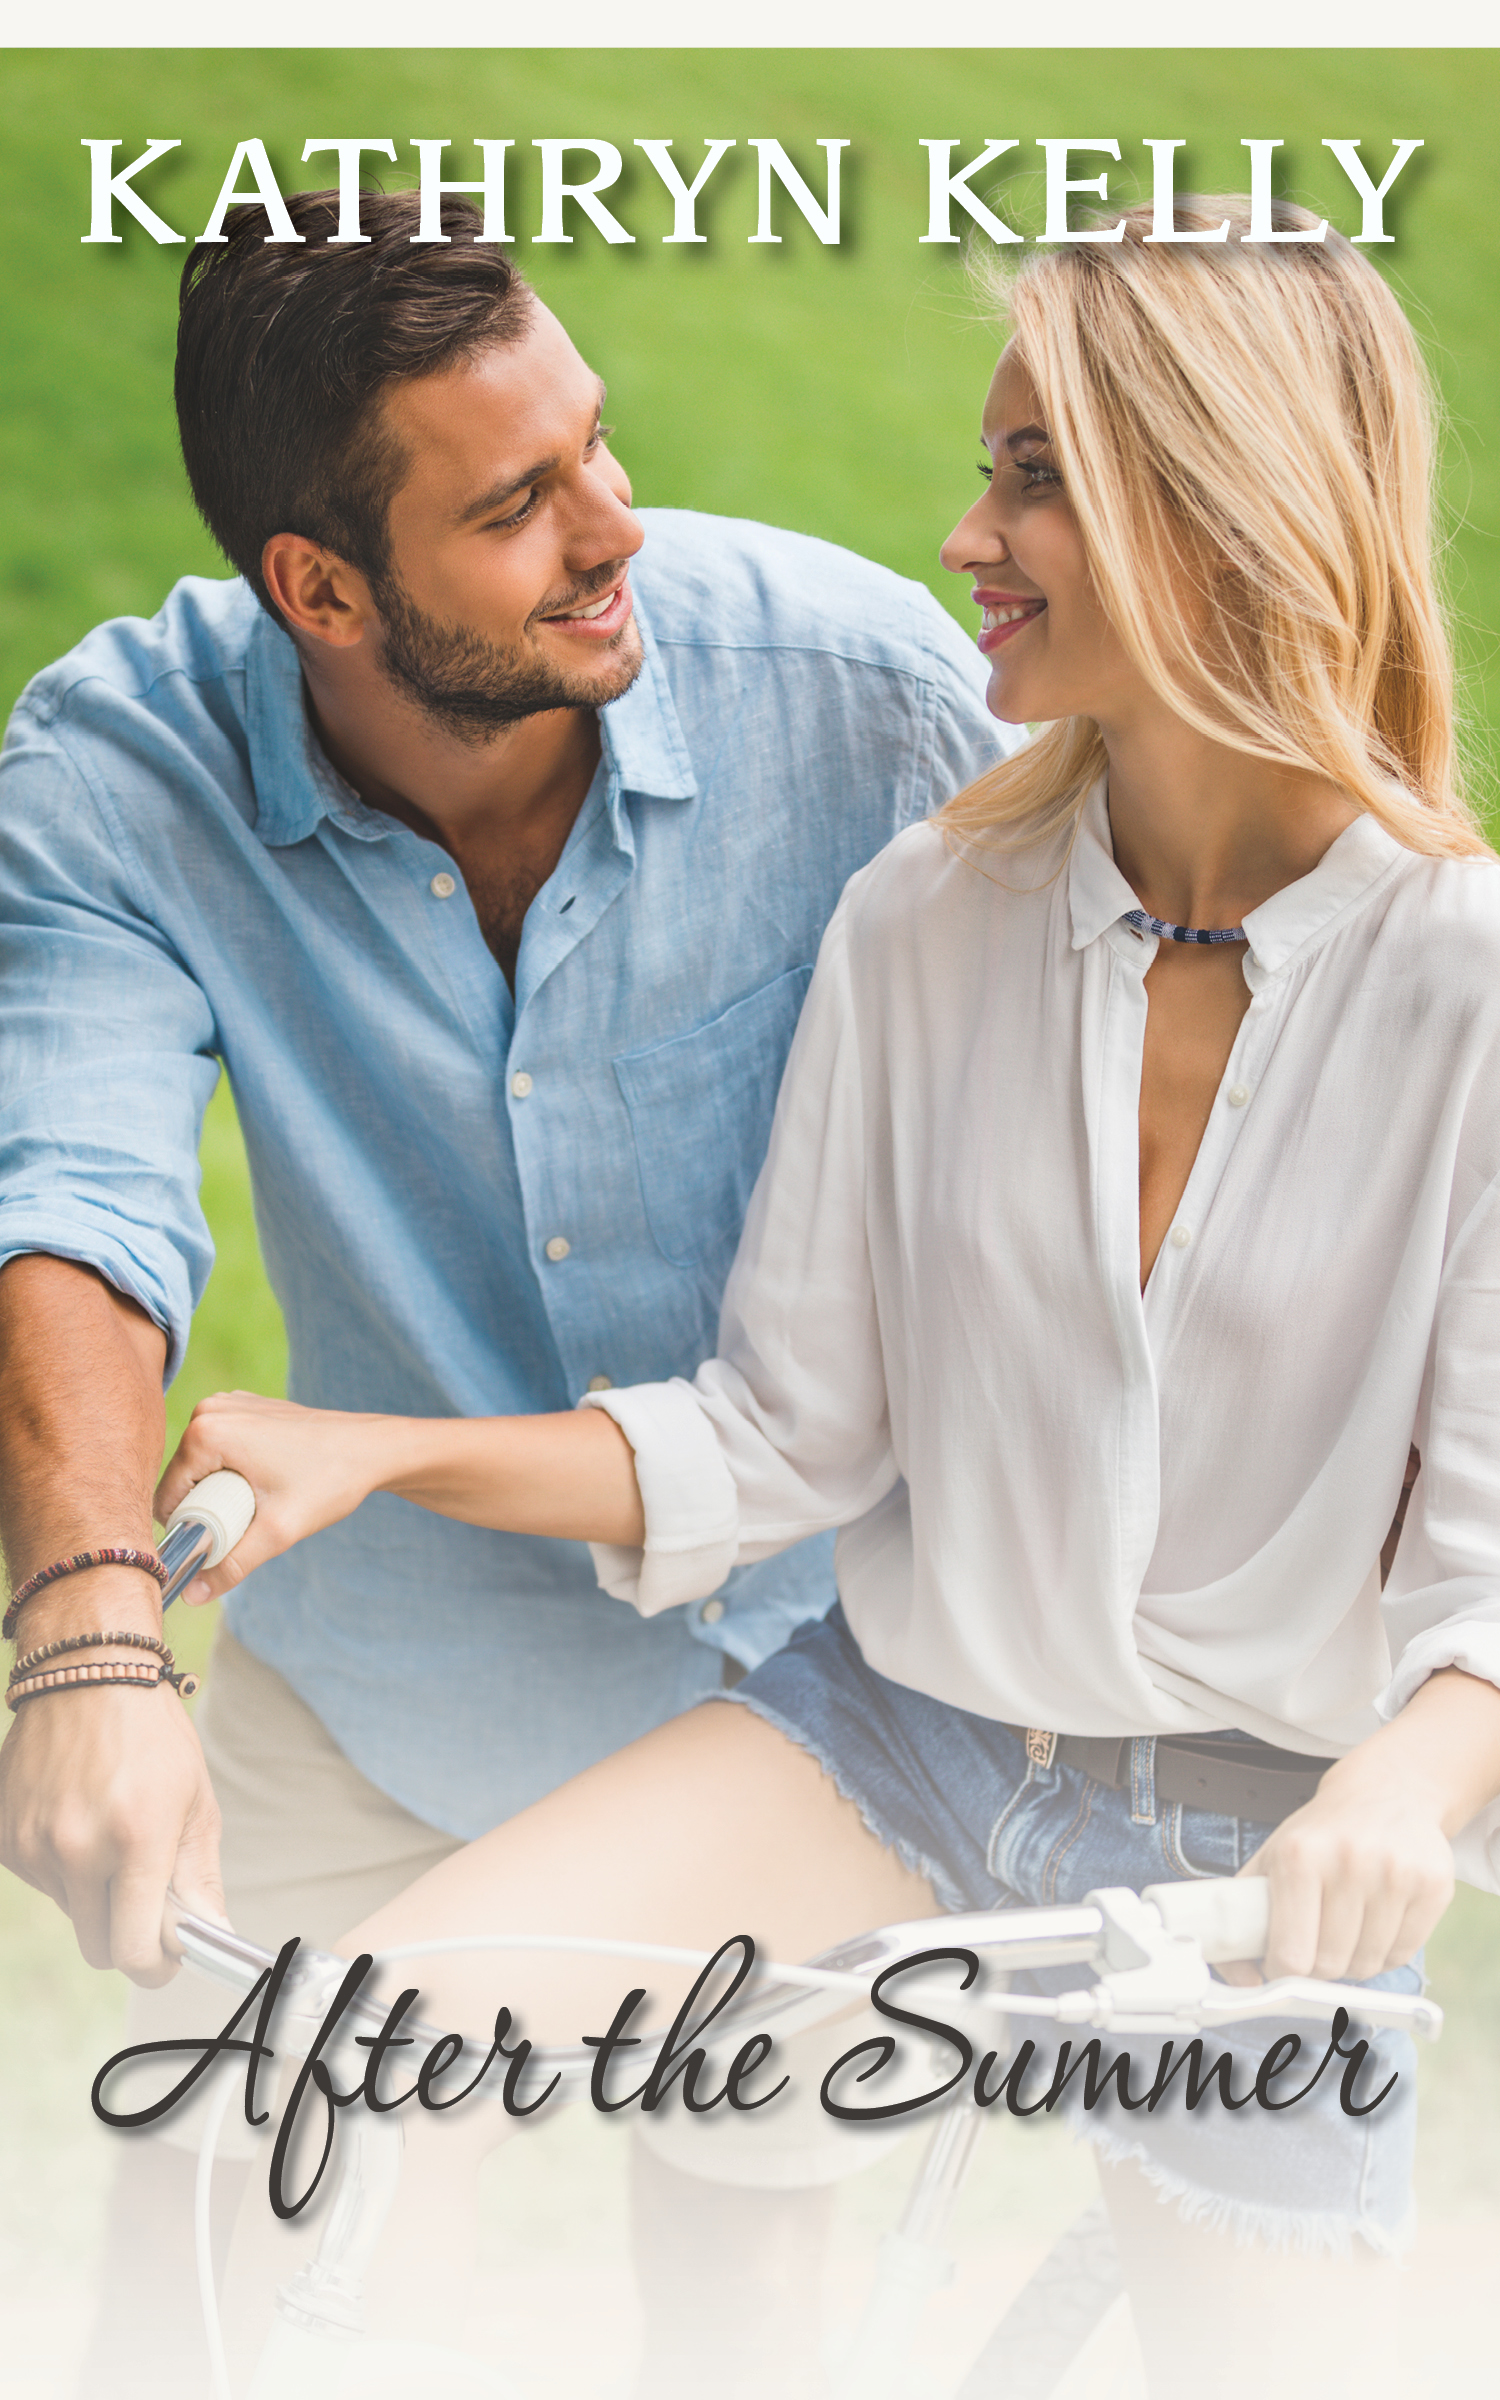 After the Summer - The summer held so many promises.But now the Fall semester brings the bright, shiny, and new with it.Along with it come so many uncertainties.A standalone clean wholesome romance short short story.